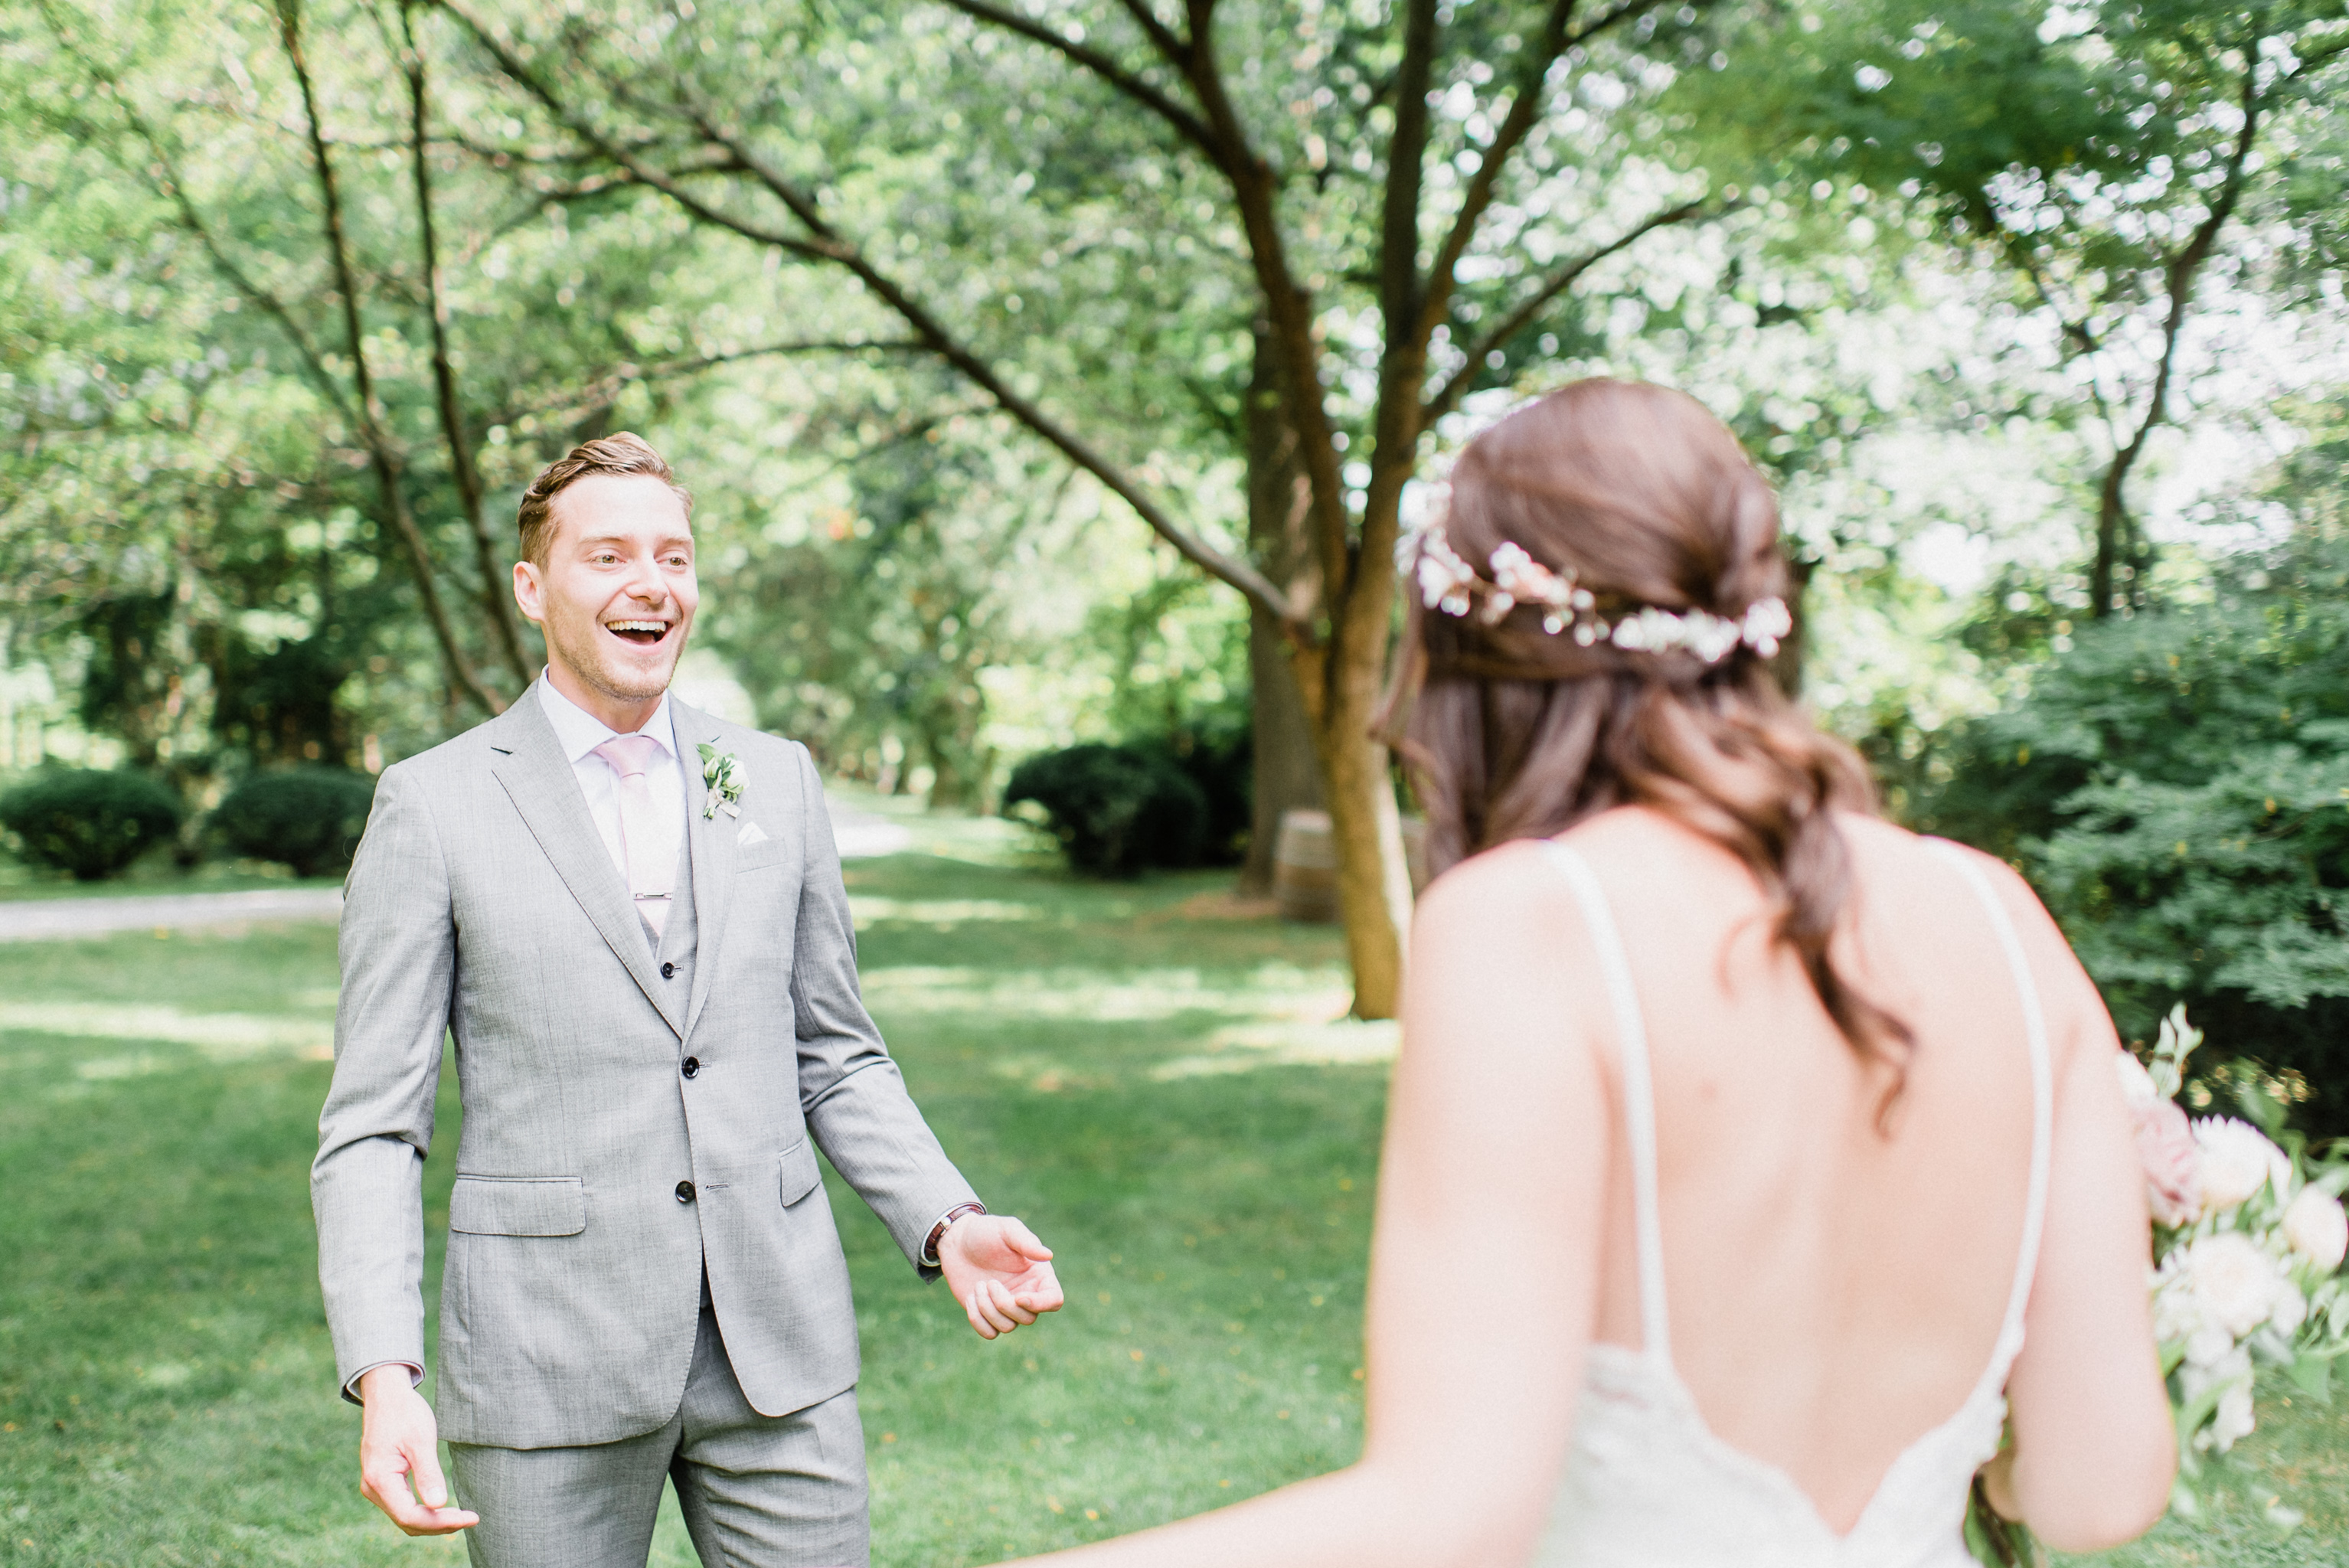 Bride and groom's first look by Jenn Kavanagh Photography